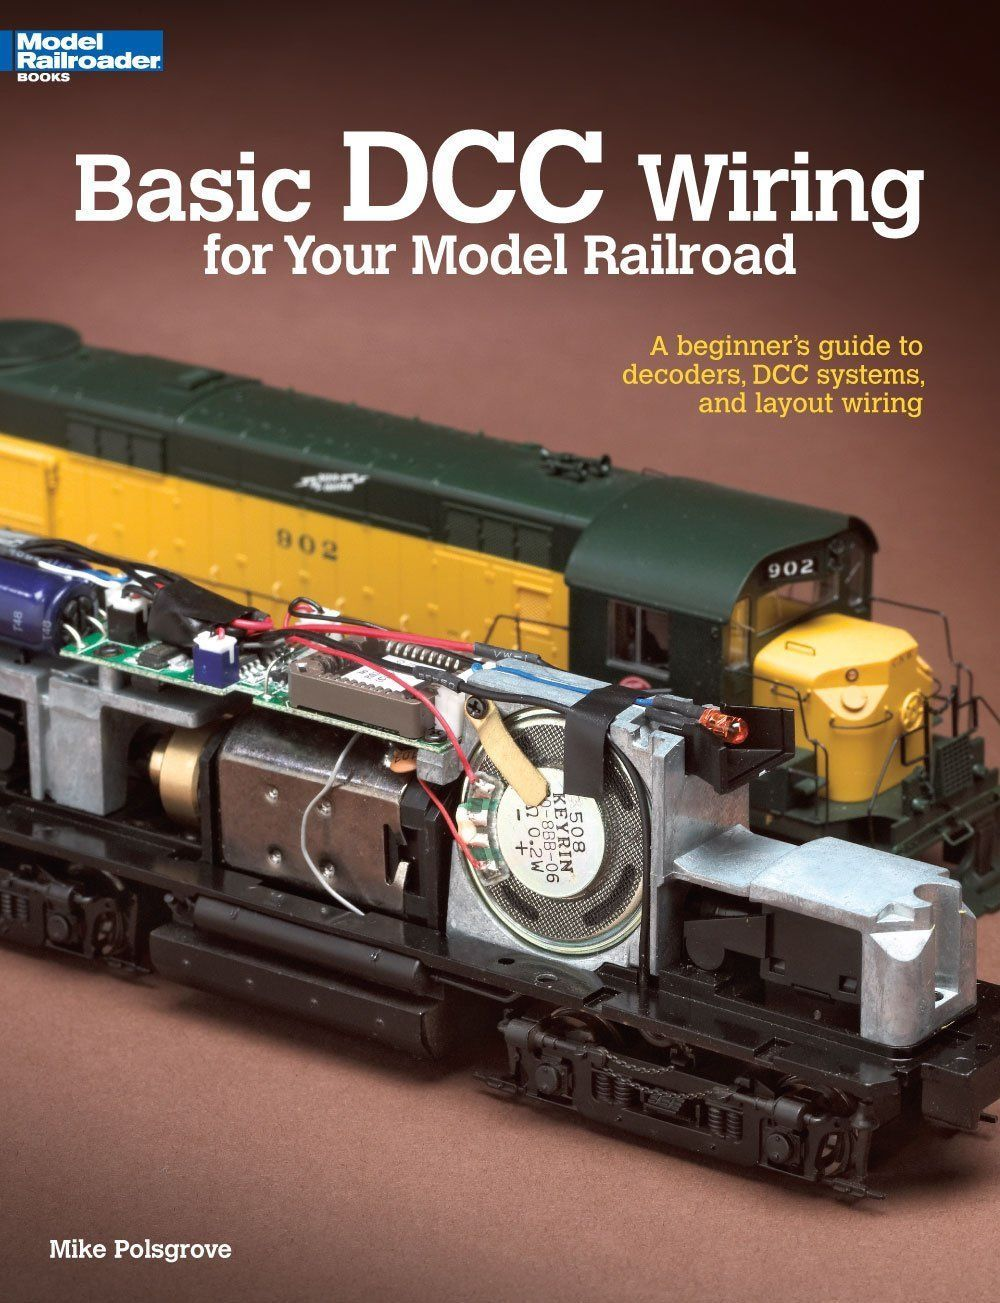 Ho Dcc Wiring Electronic Diagrams Track Switch Motor Basic For Your Model Railroad Series Modeltraindiy